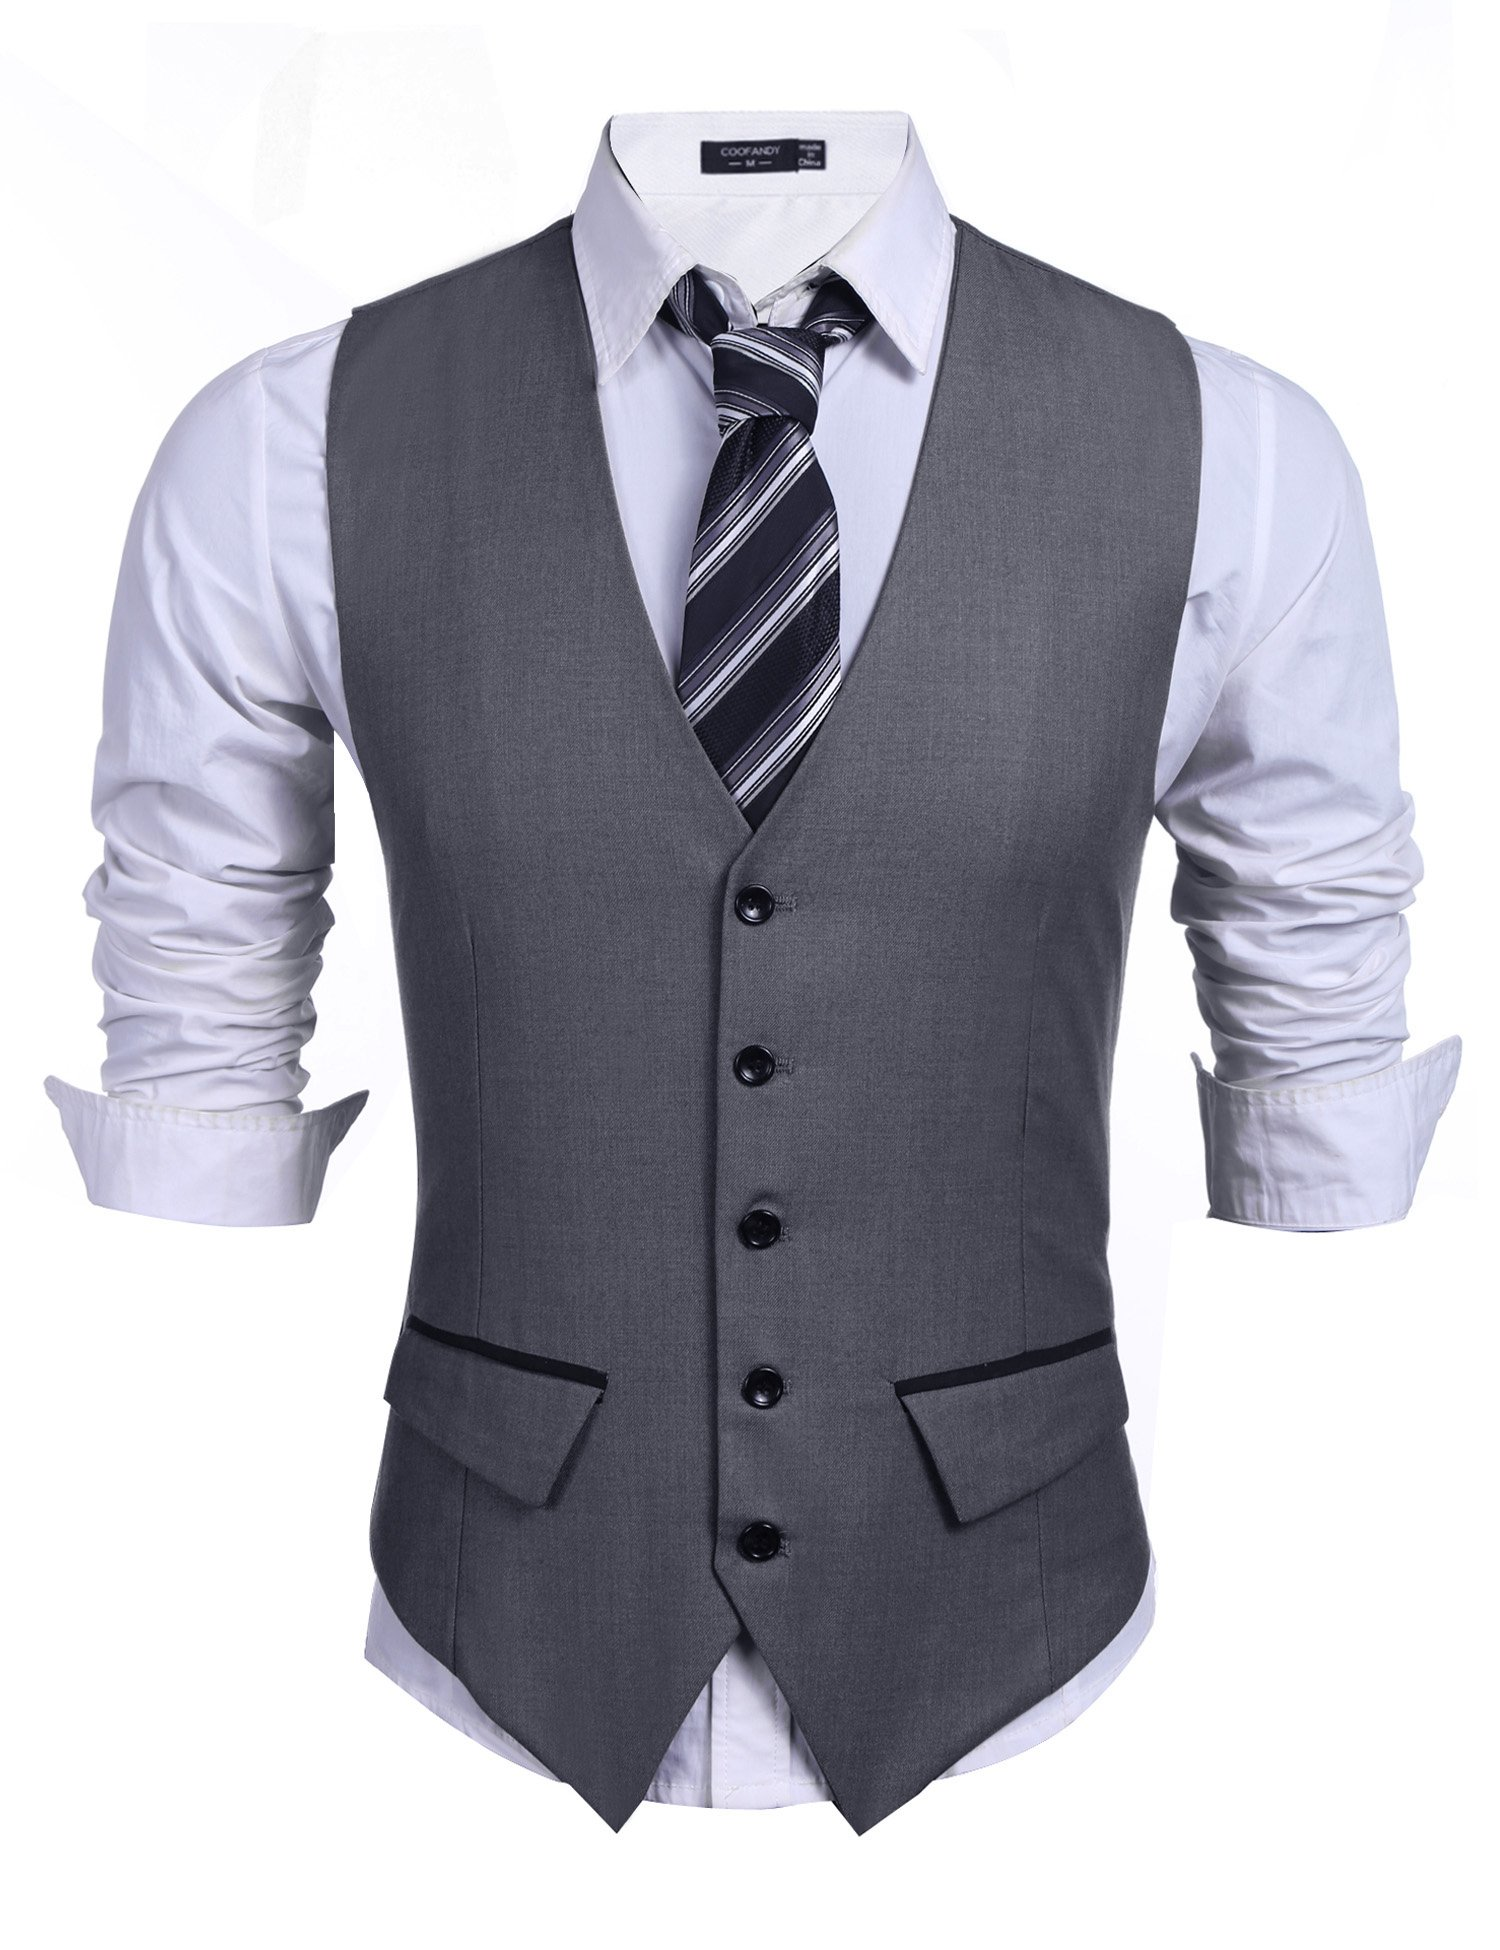 Coofandy Mens Casual Slim Fit Skinny Wedding Dress Vest Waistcoat, Small, Dark Gray